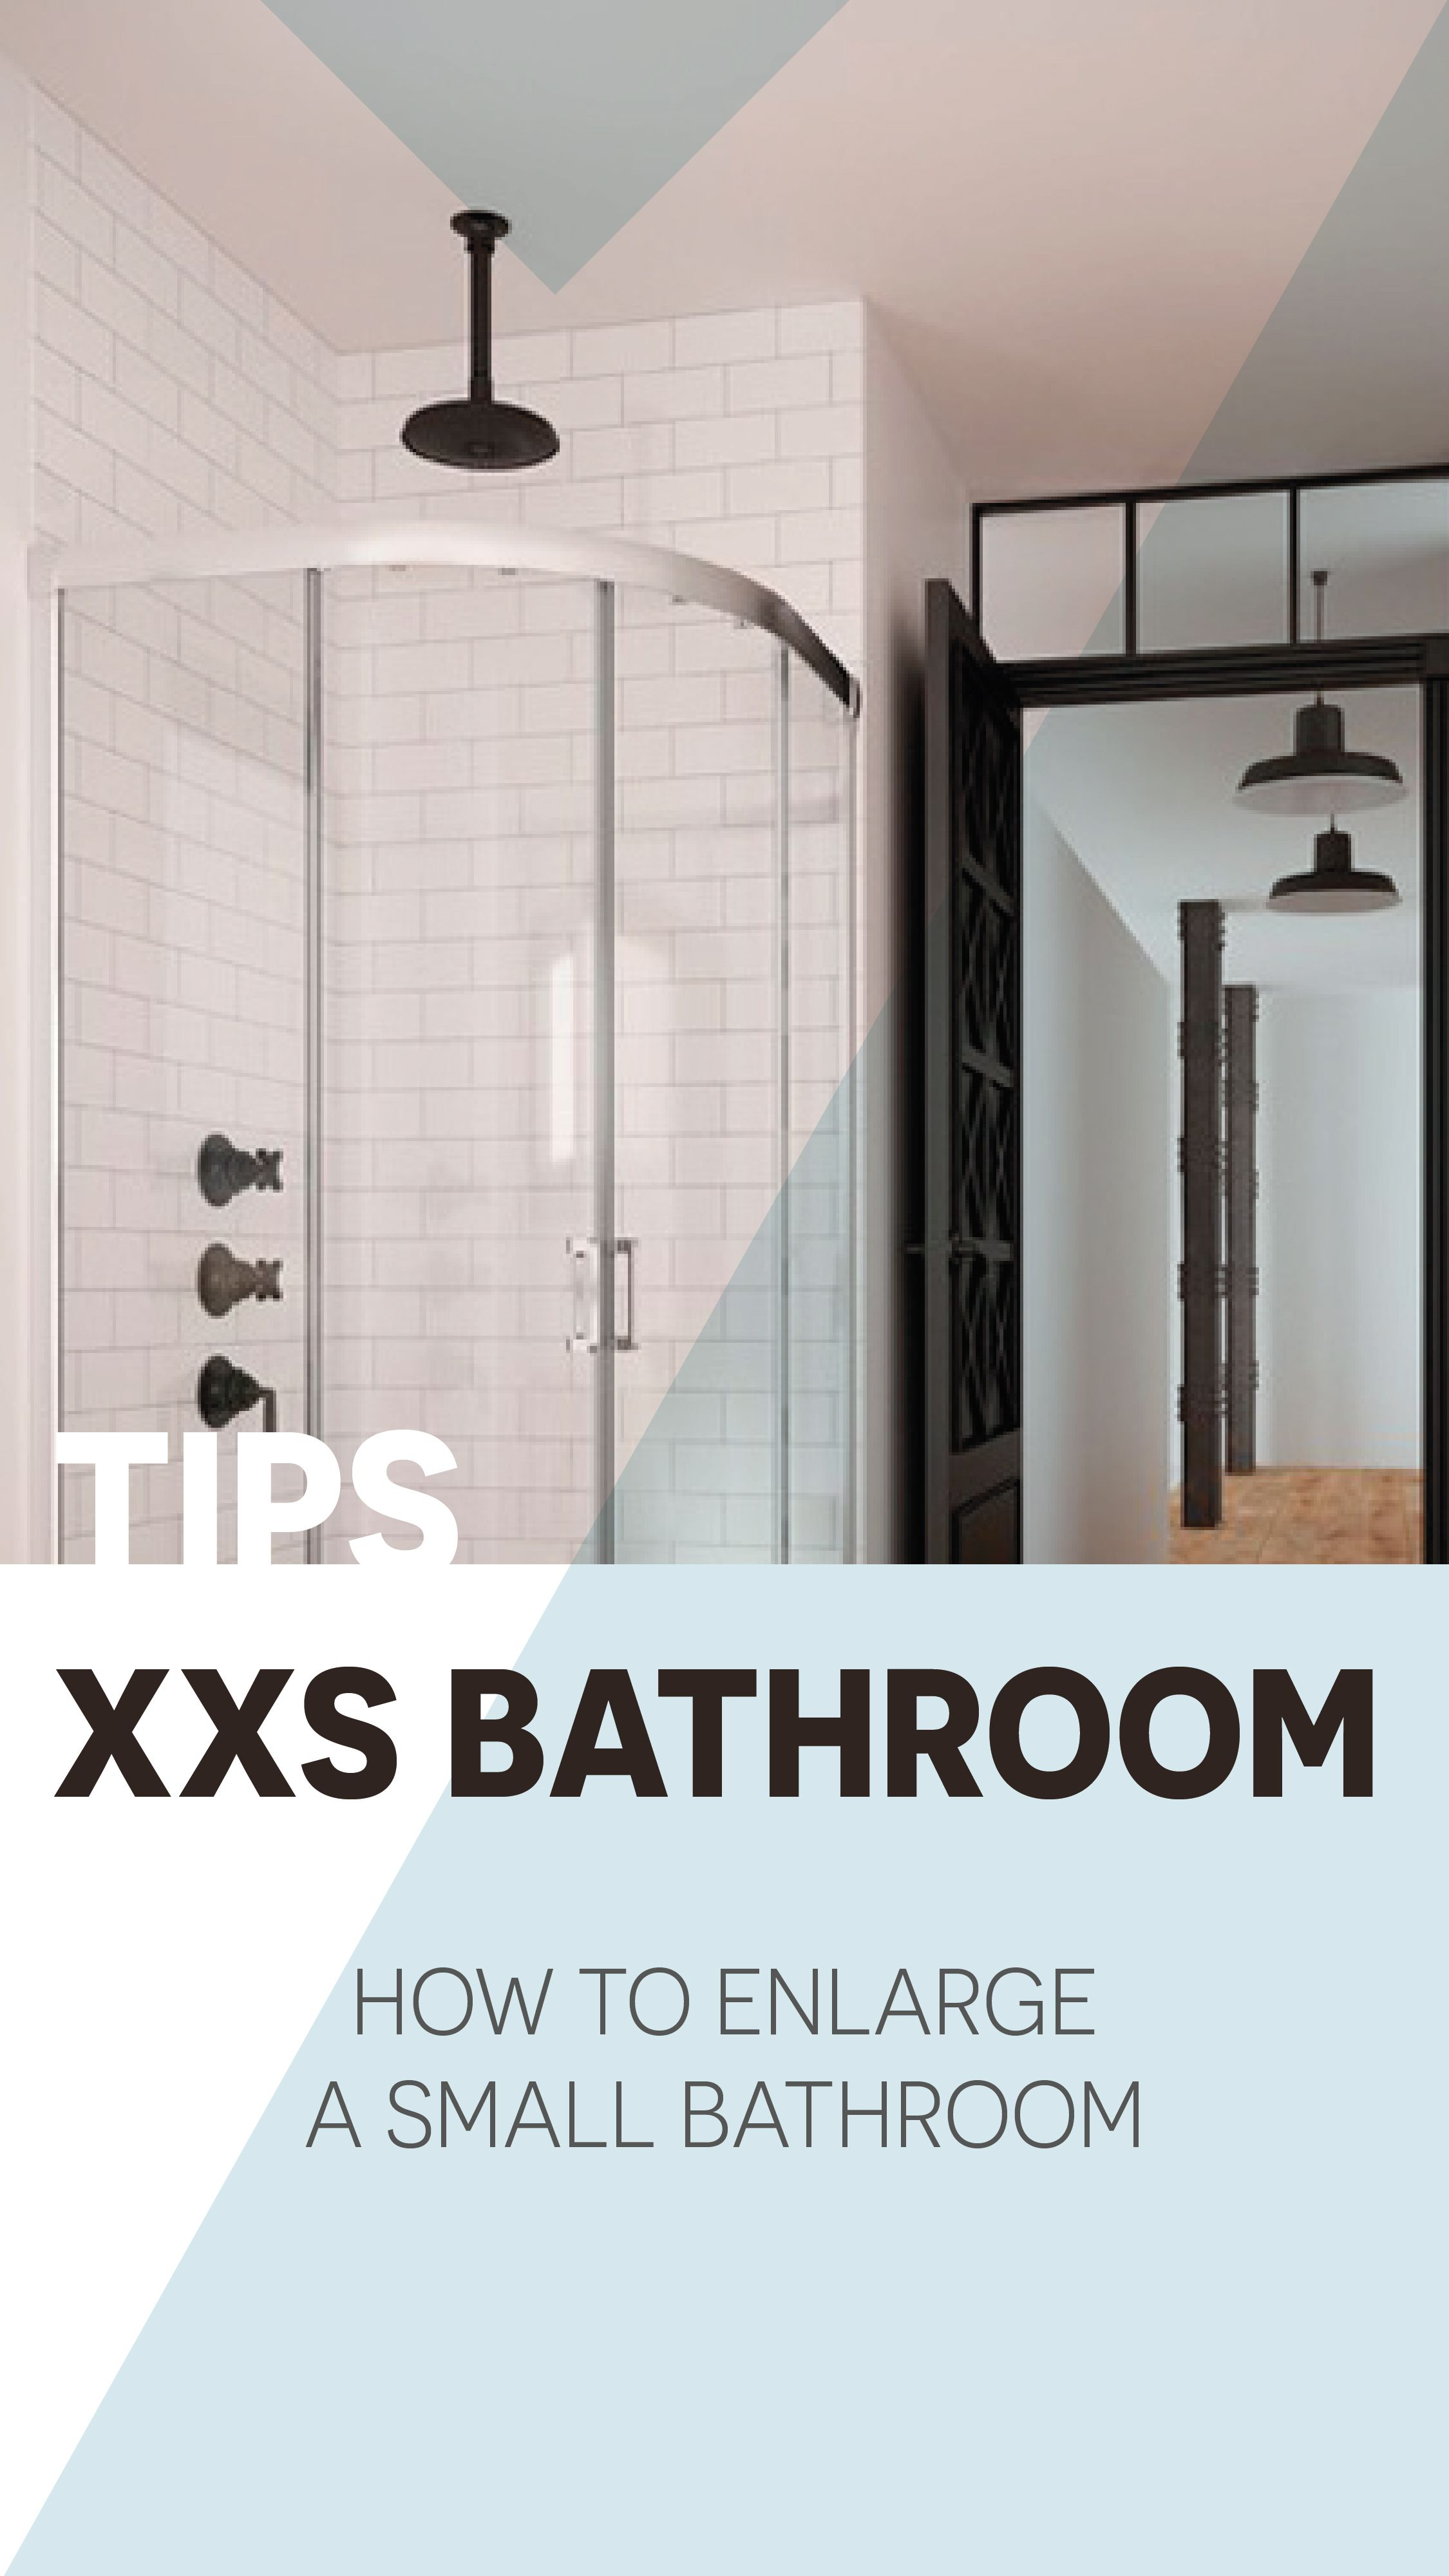 XXS bathroom tips: great functionality and beauty in compact ...